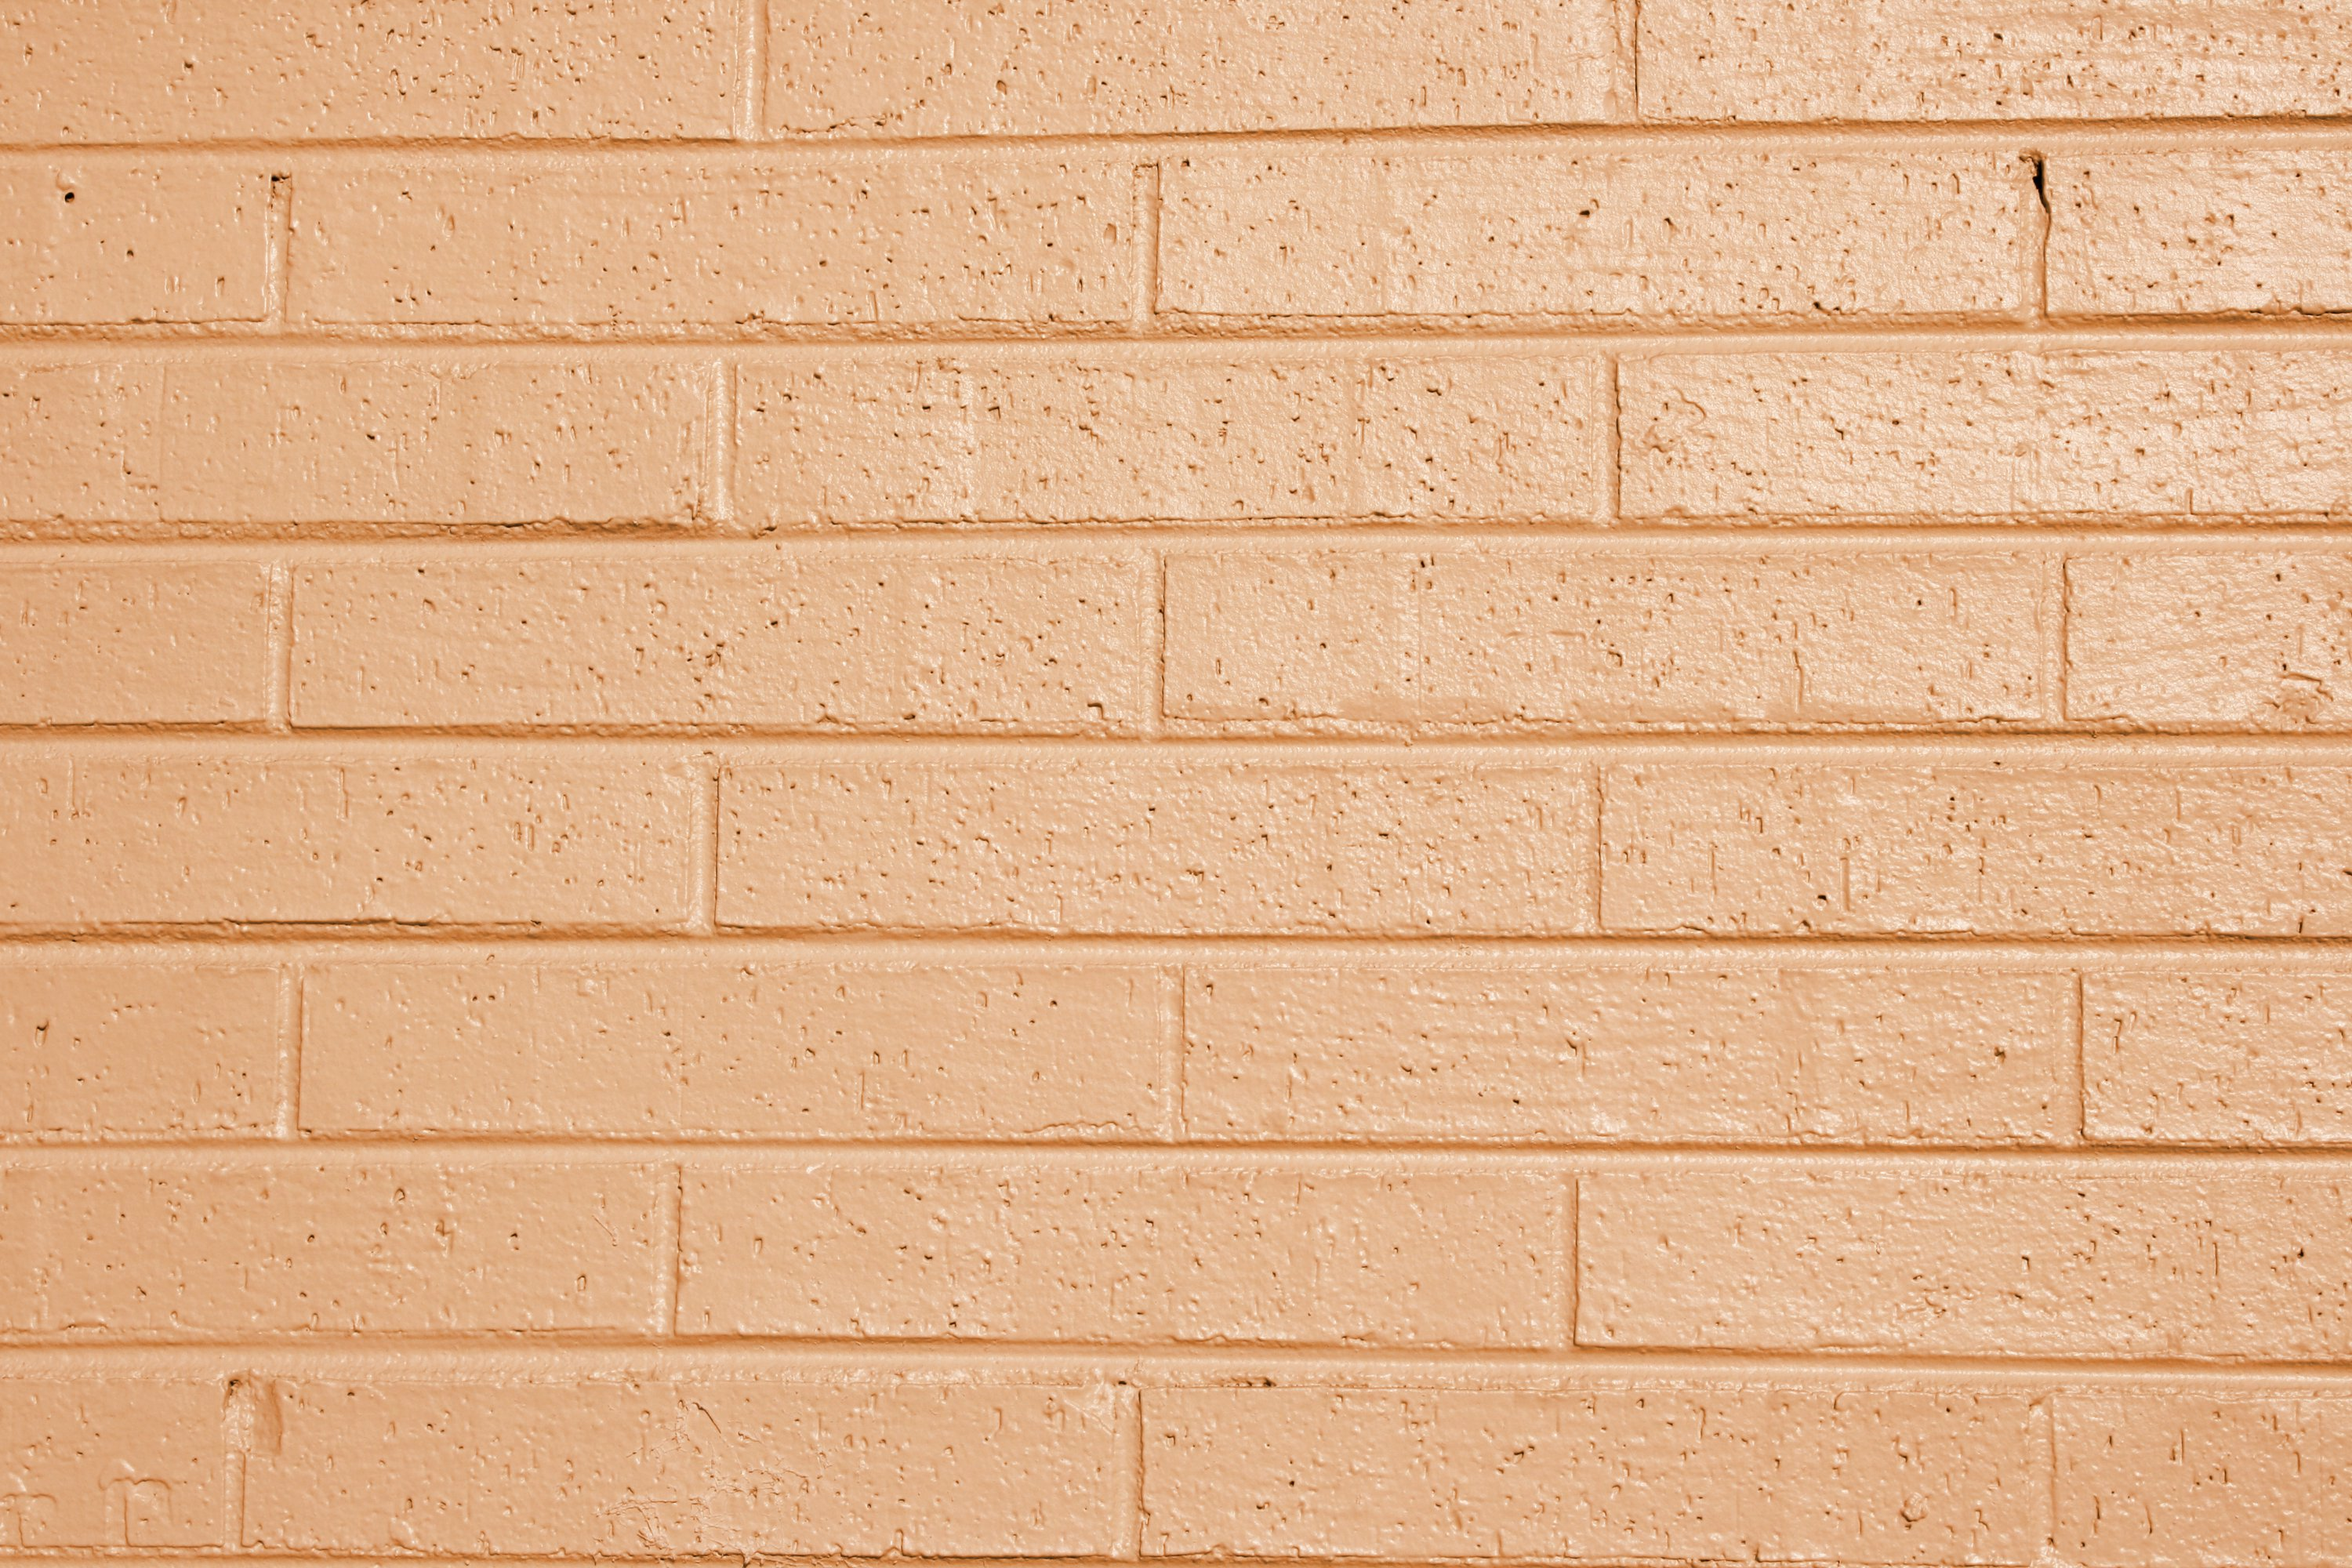 Light Orange or Peach Painted Brick Wall Texture Picture | Free ...